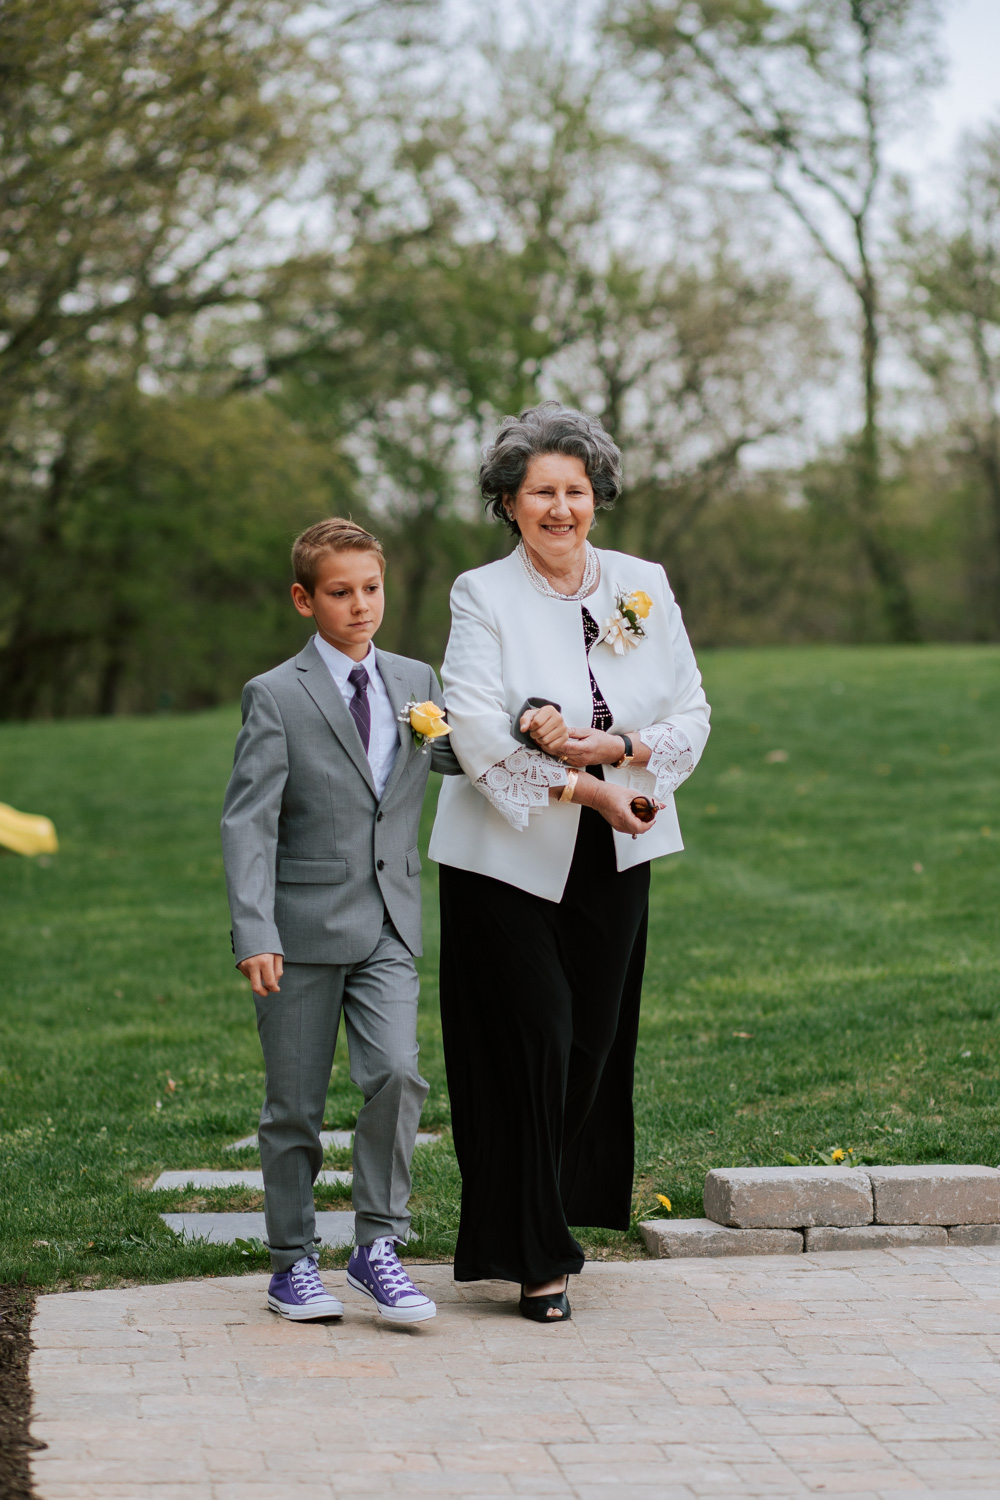 Shutter Up Studios   Wedding photographer in Pittsburgh, Pennsylvania   Outdoor rustic elegant country chic ceremony with purple Converse